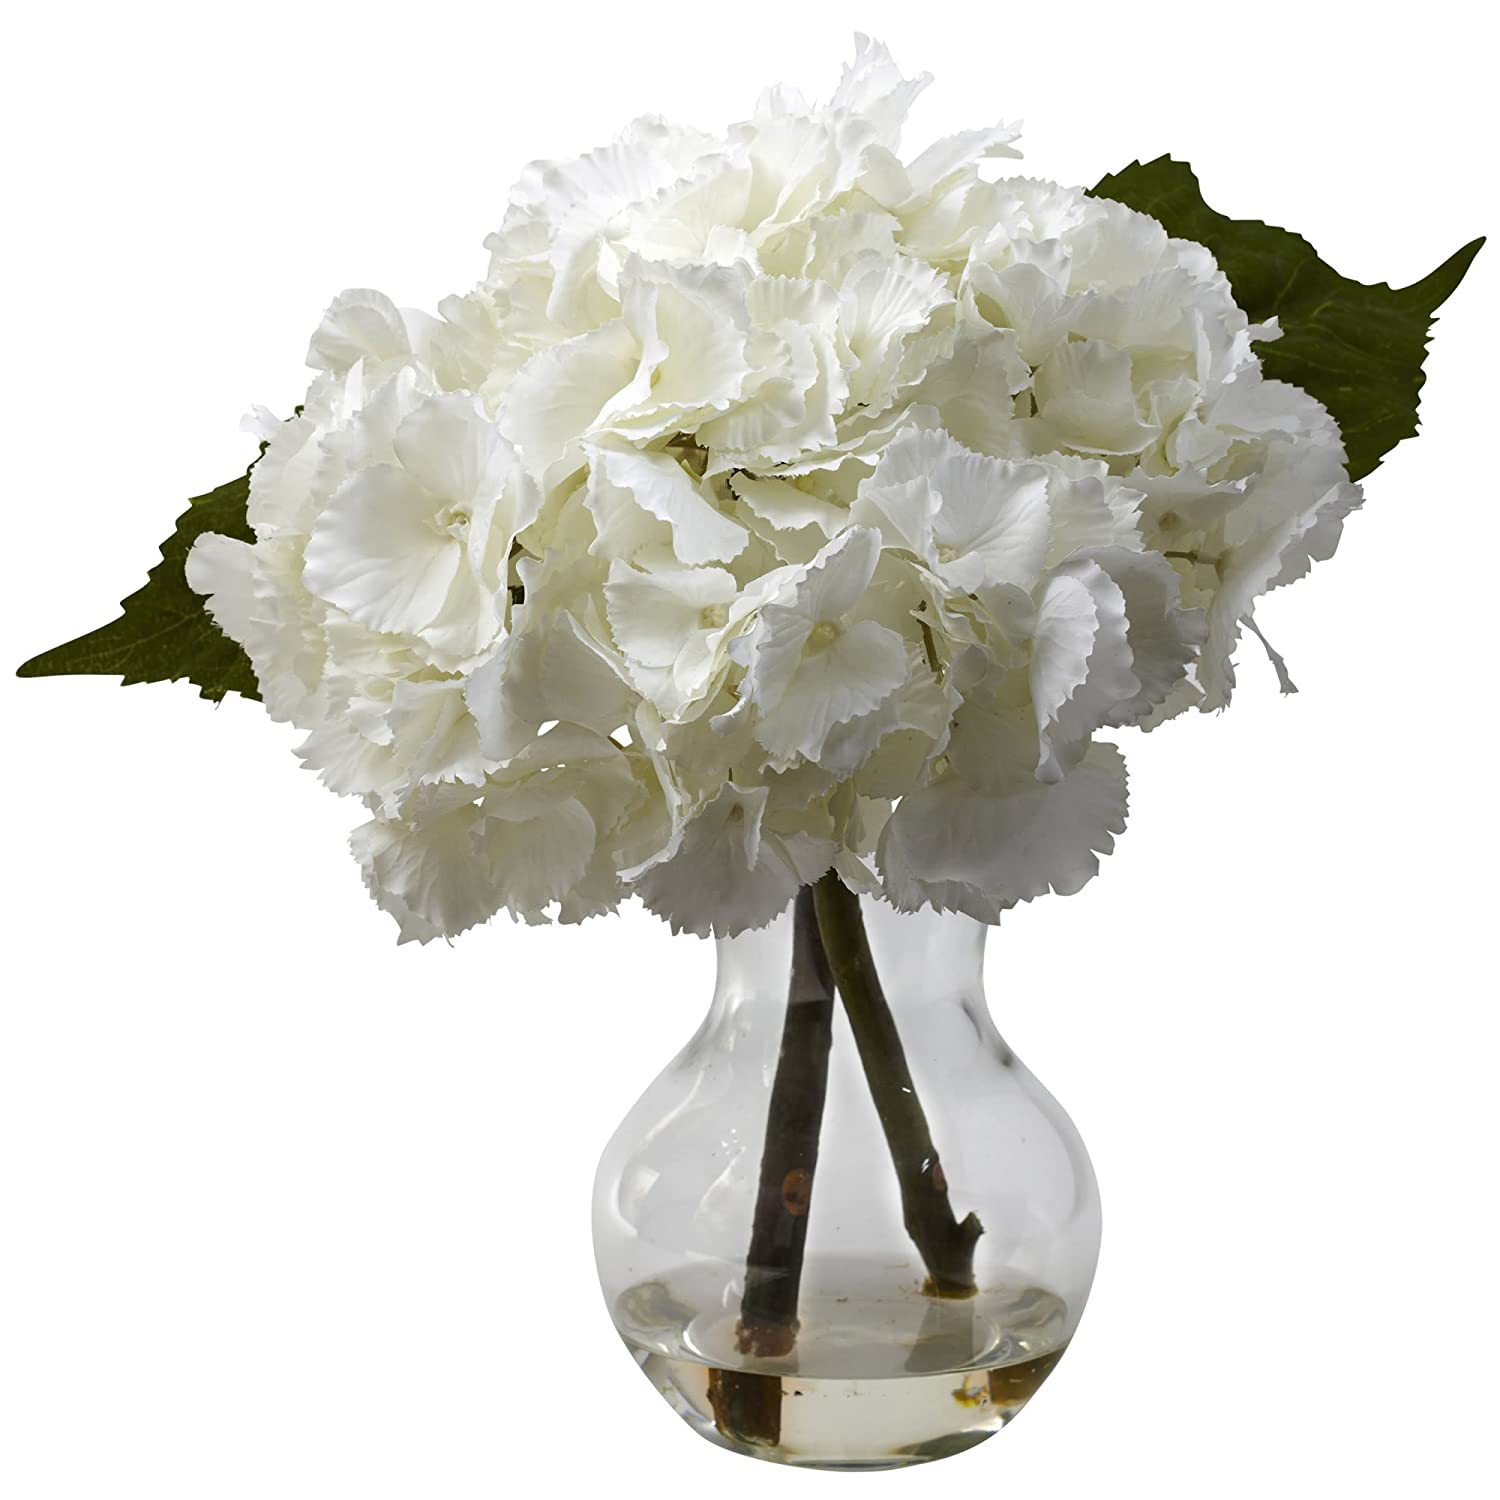 Amazon.com: Nearly Natural 1314 Blooming Hydrangea with Vase ...